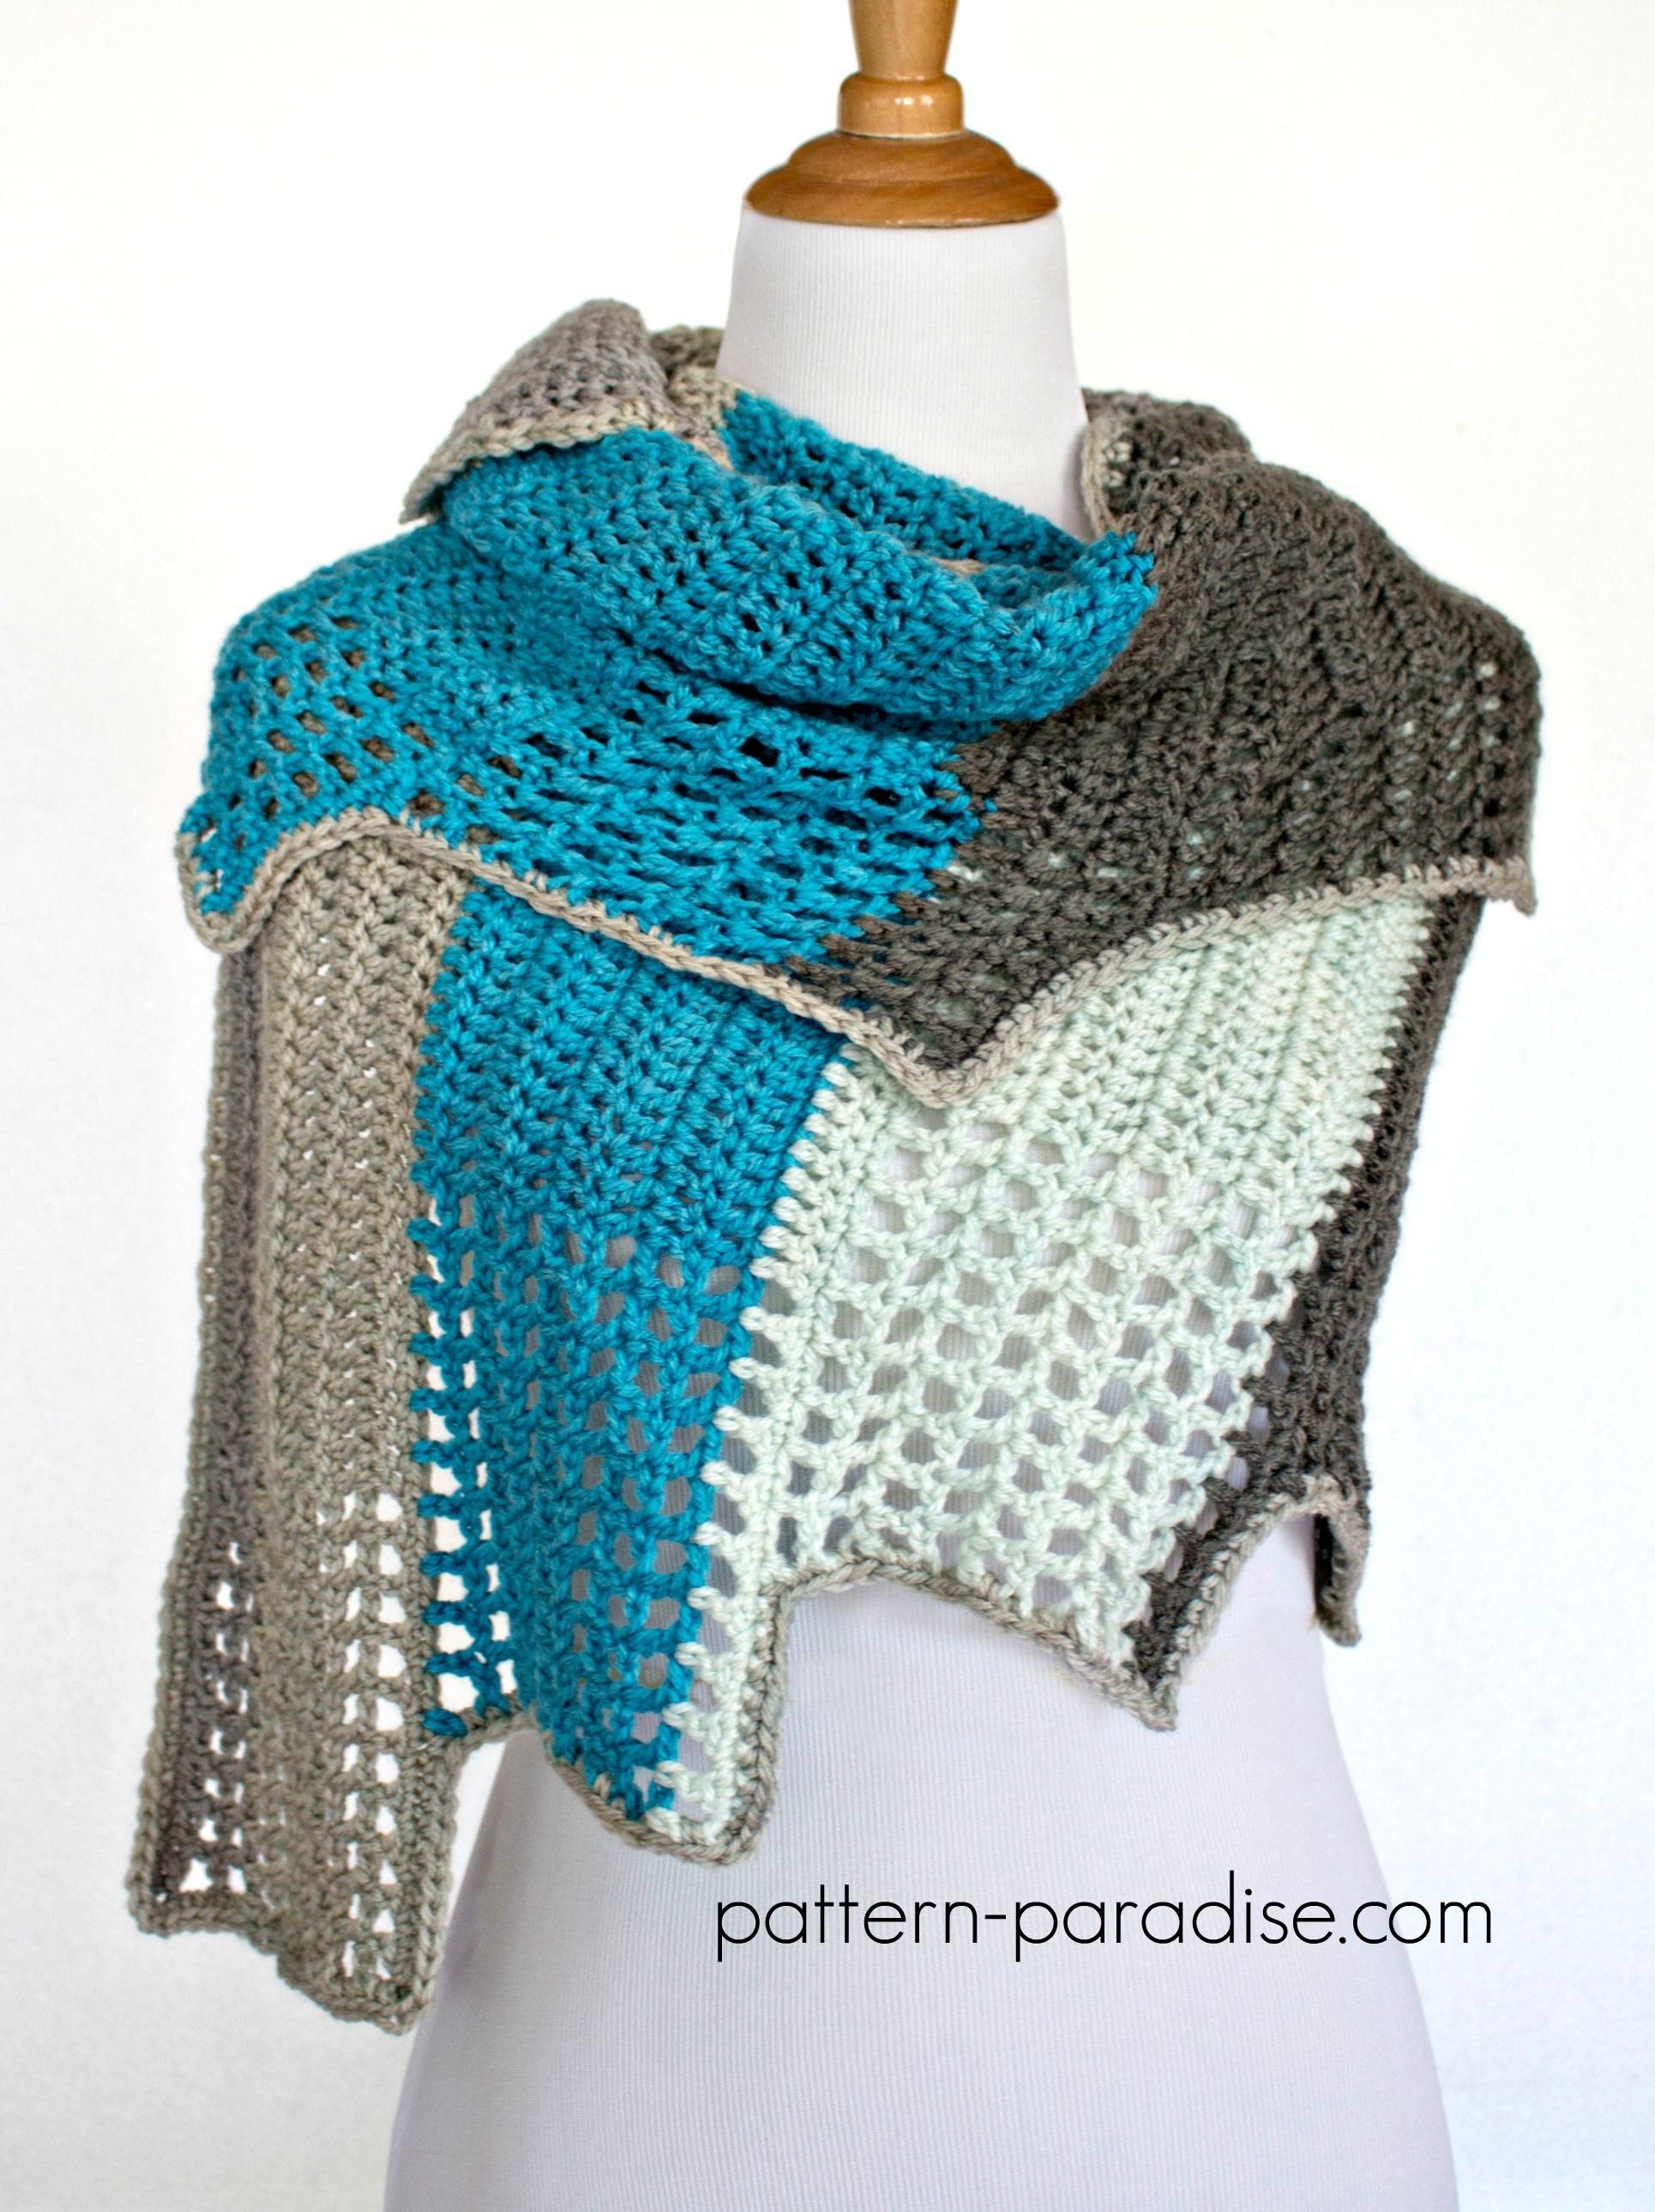 Free Crochet Pattern: Blue Ridge Wrap | Stricken häkeln, Häkeln und ...